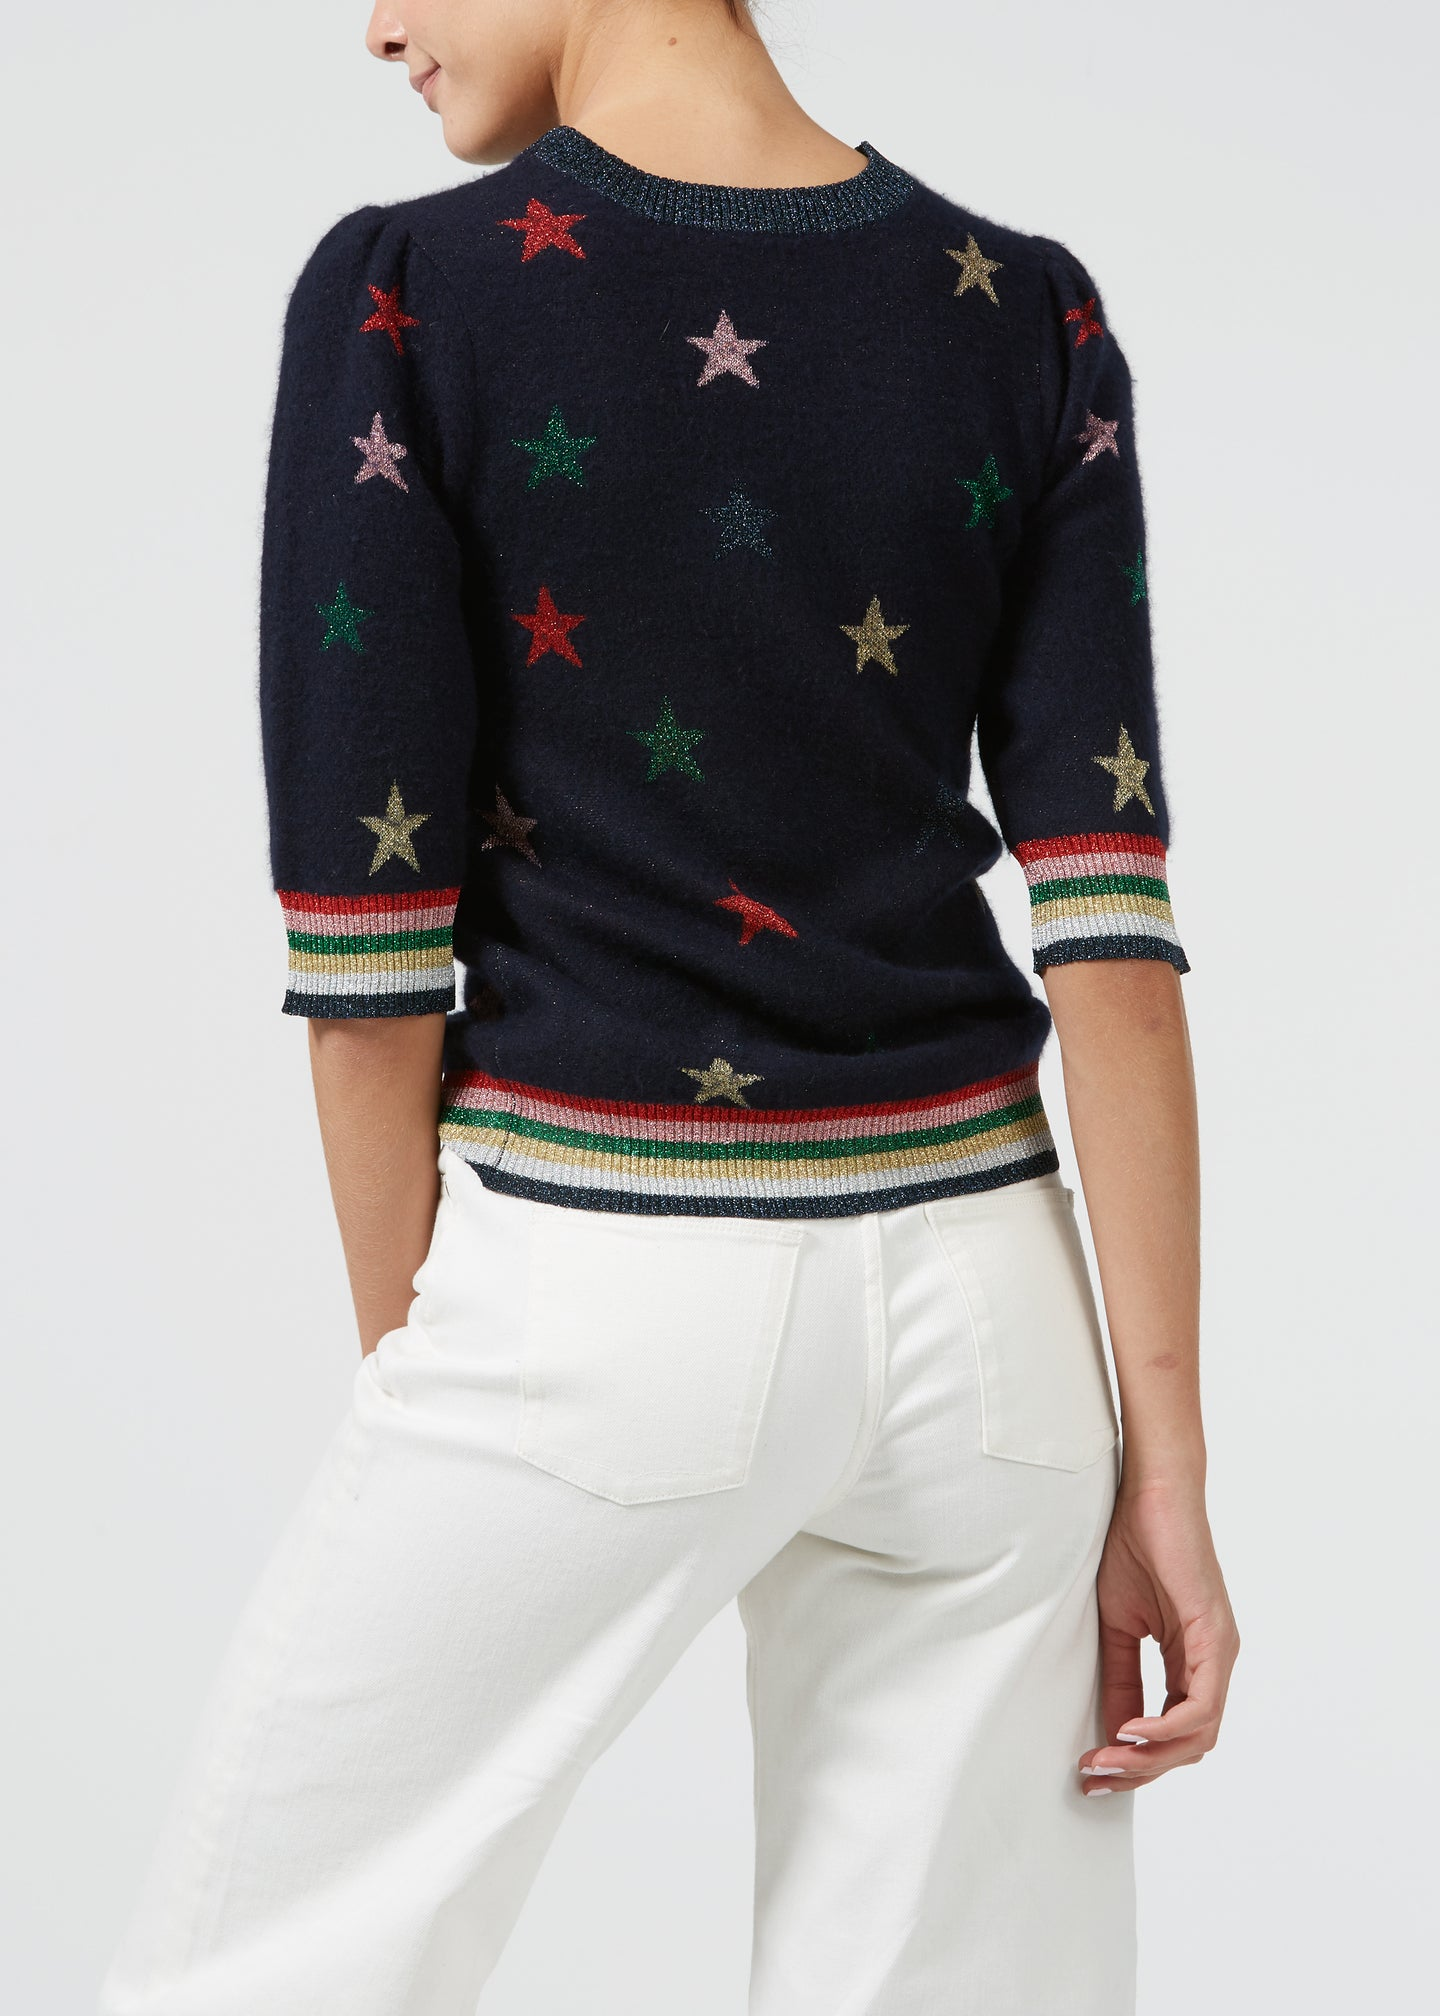 On Stage Cashmere Knit - Rainbow Luxe